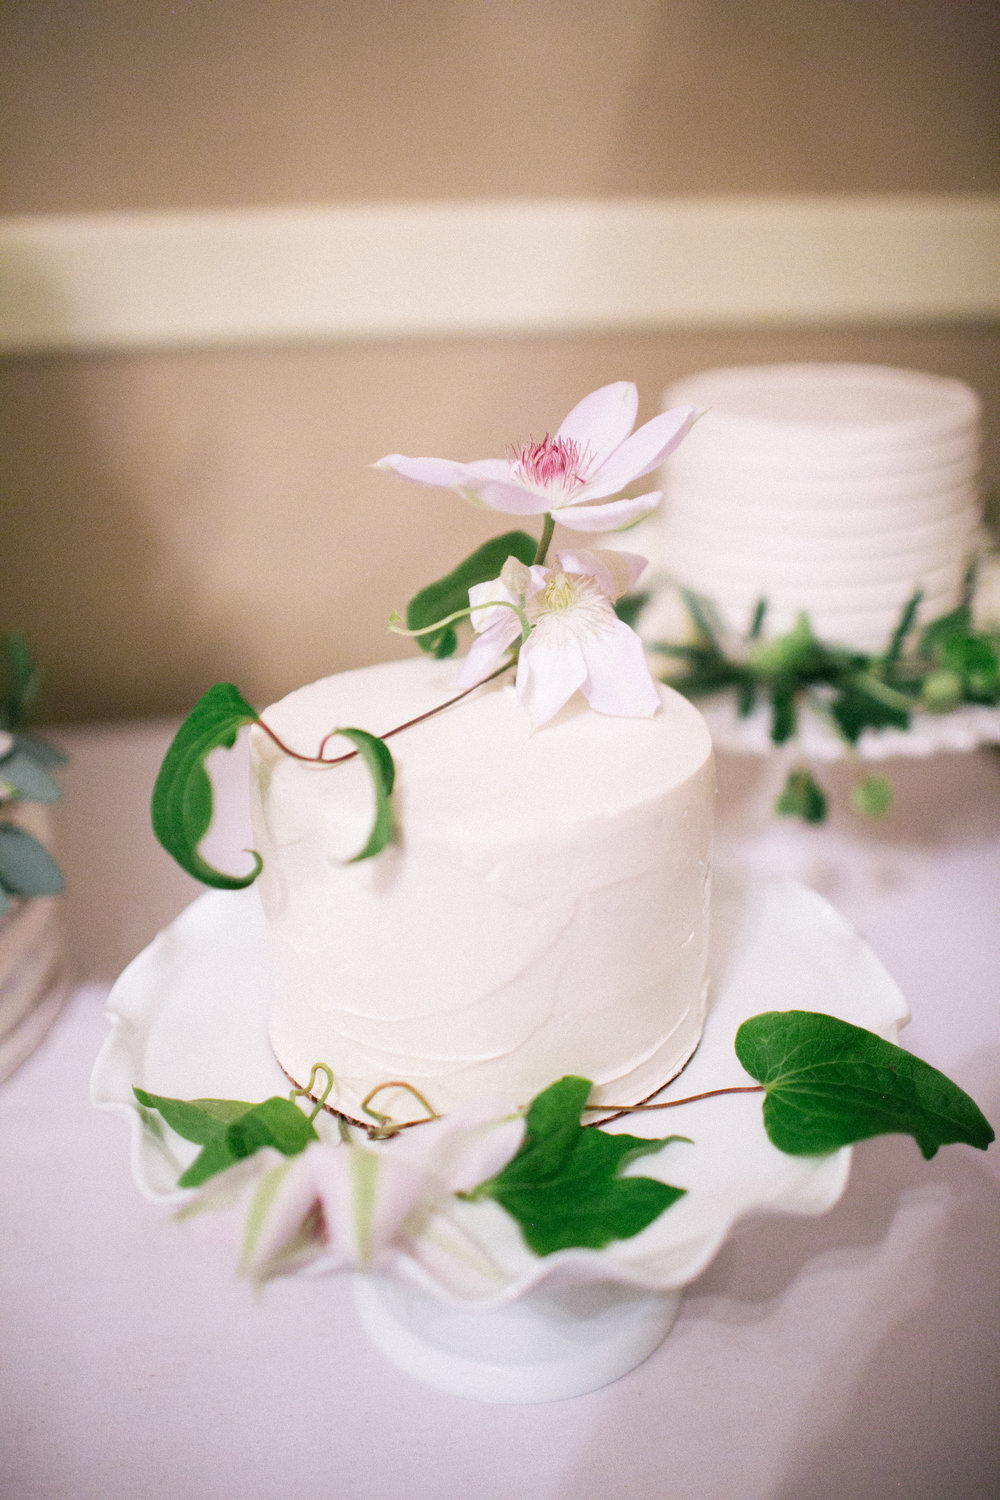 Simple single tier buttercream wedding cake inspiration with vines